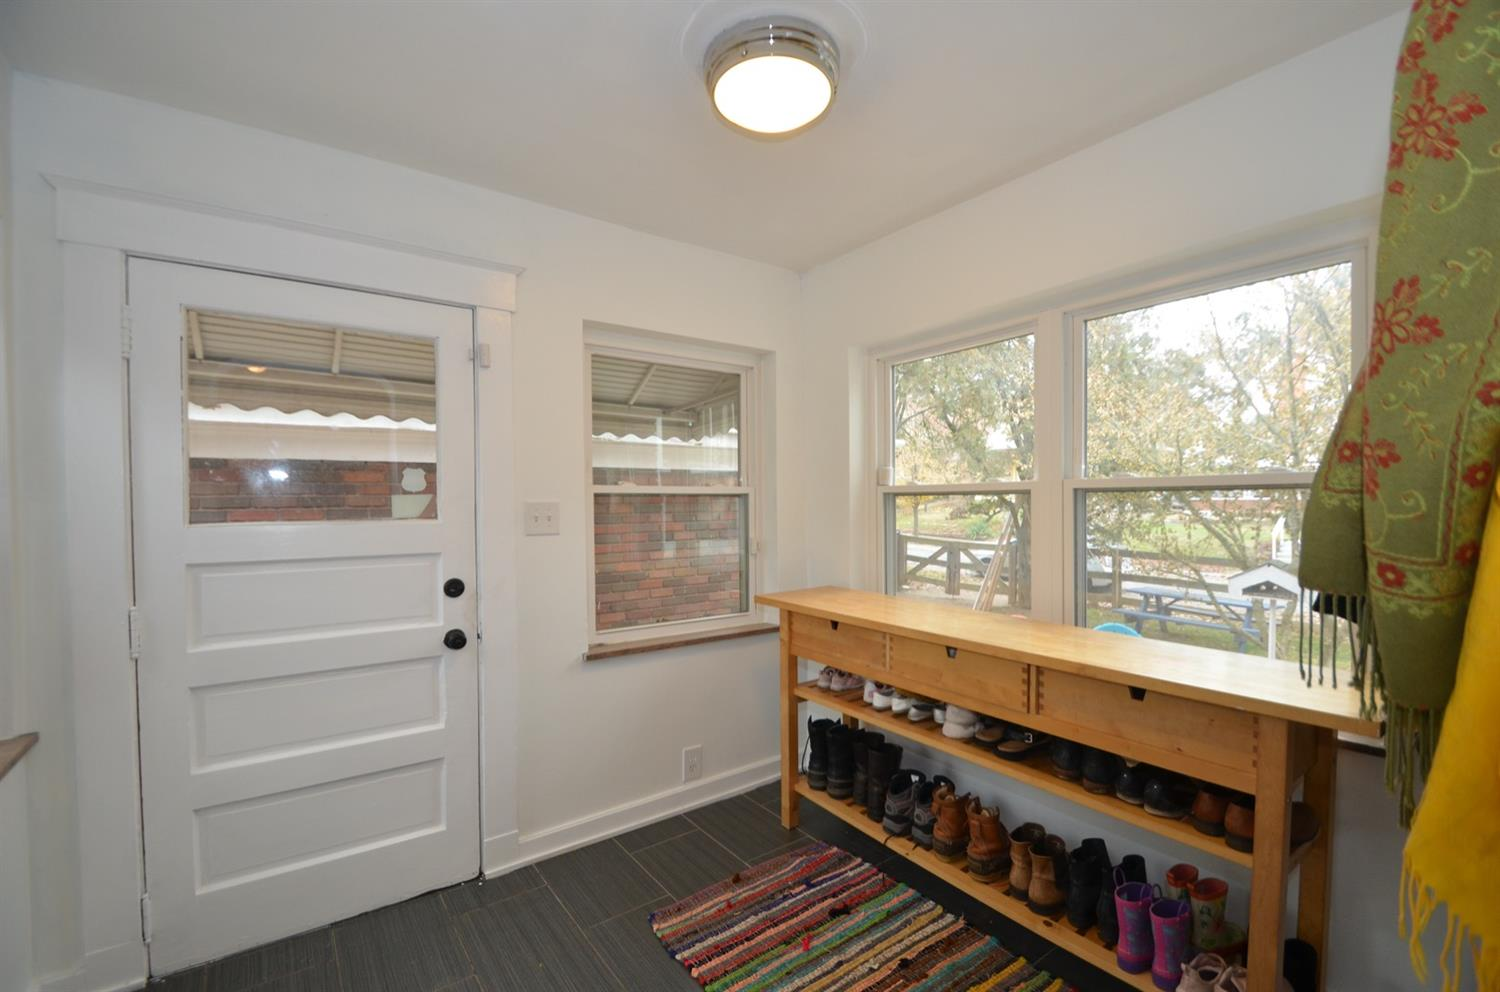 Mudroom at the back of the house is a great entry point jus off of the garage and driveway.